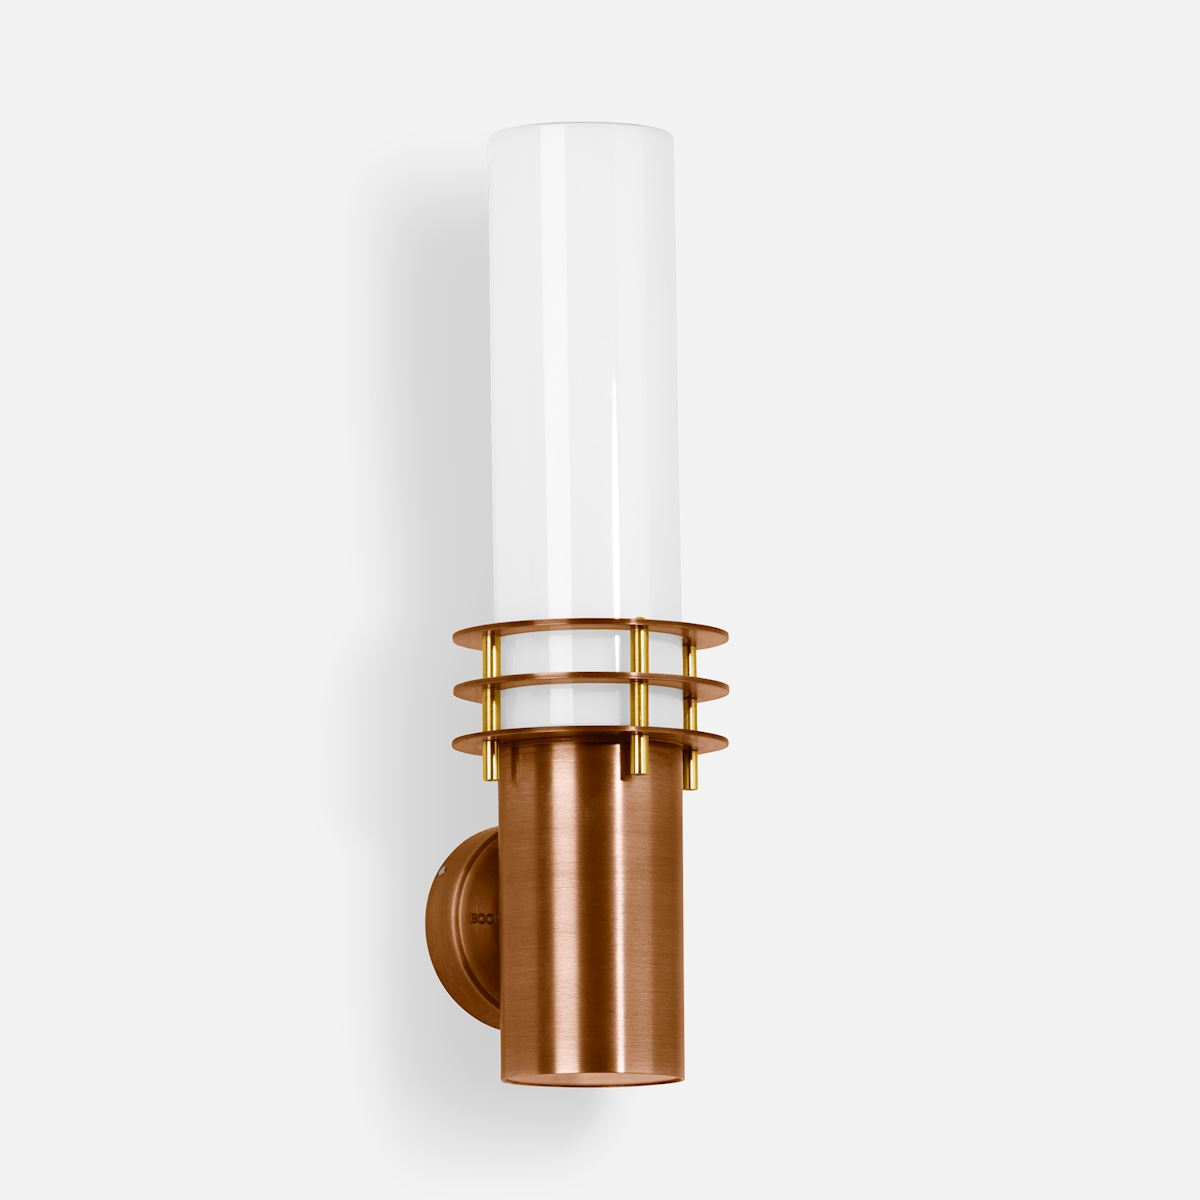 Copper and brass wall luminaire